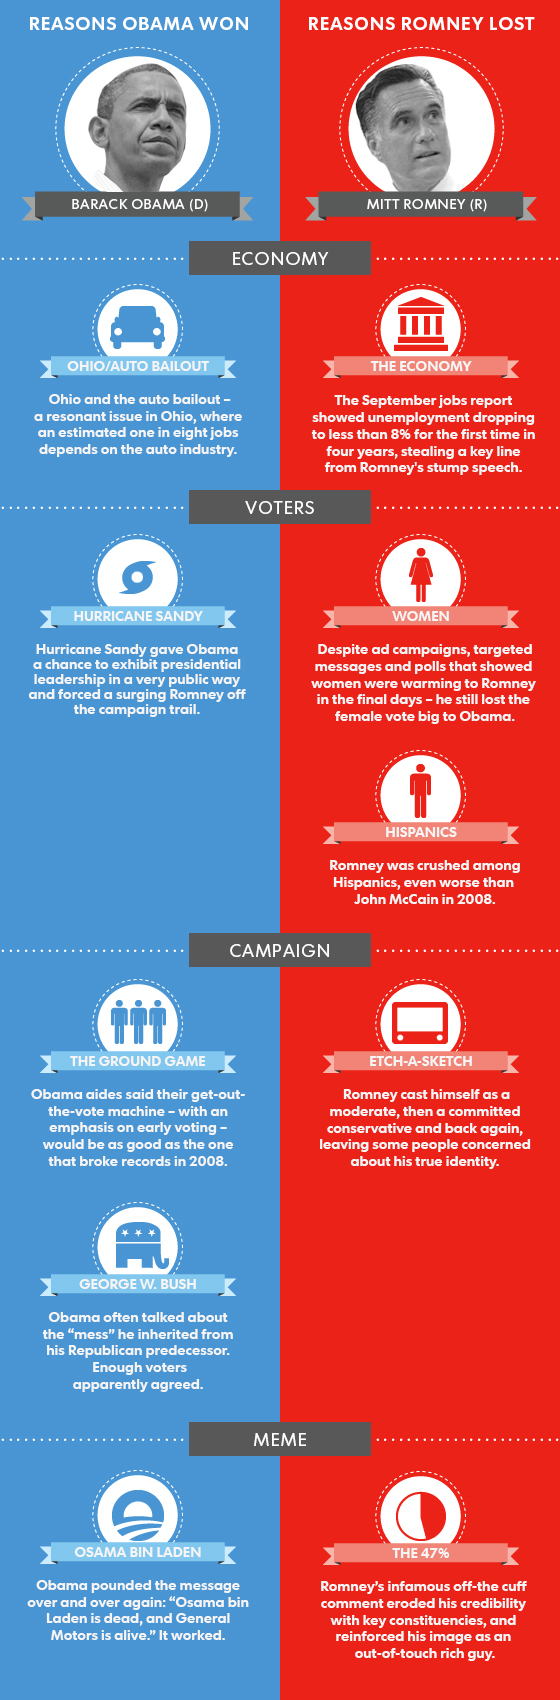 Why Romney Lost-Infographic